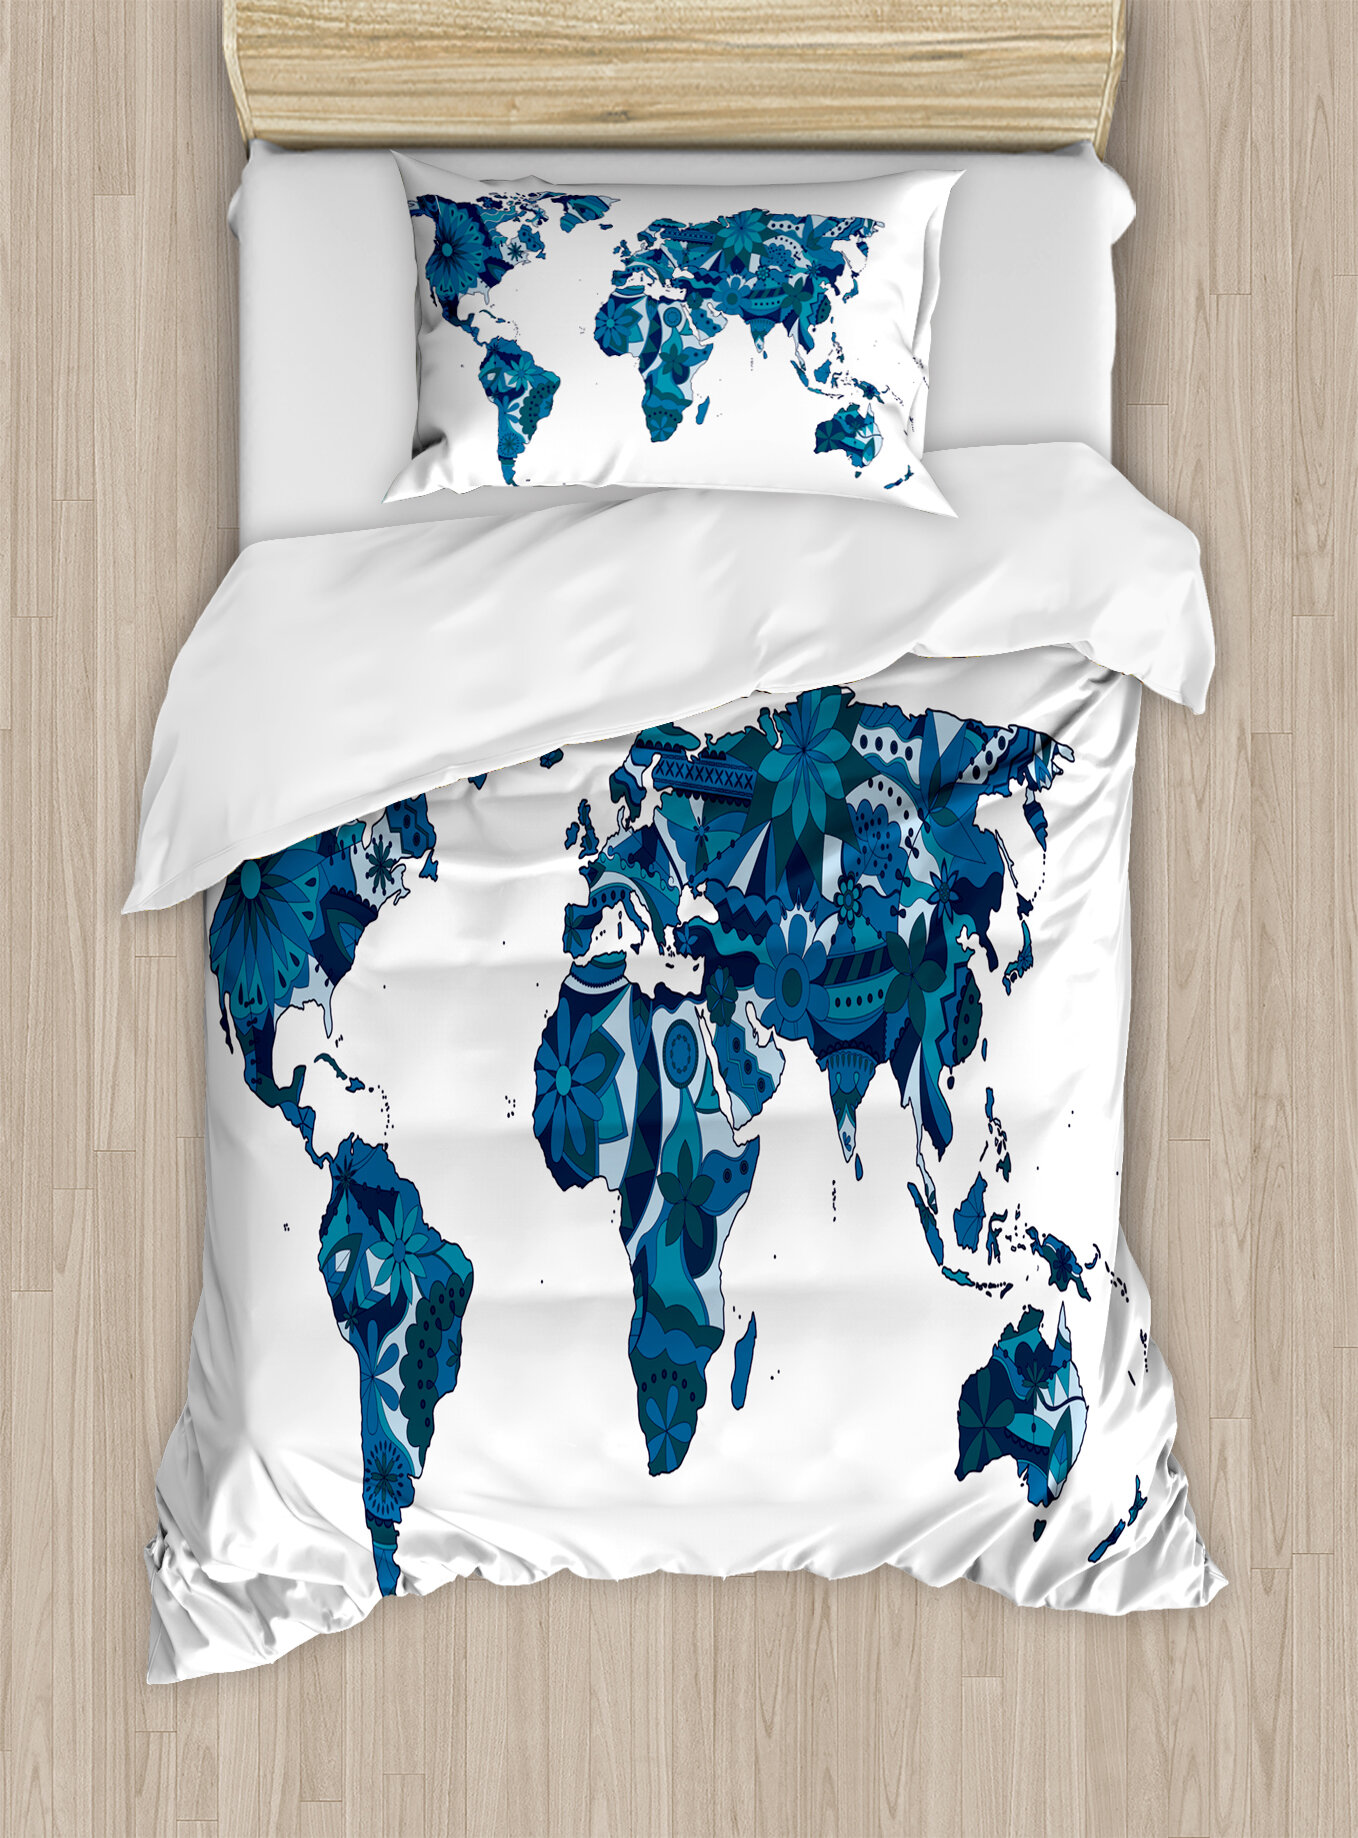 World Map Lilac Flowers Covered Earth Continents Unusual Eco Plants Globe  Display Duvet Cover Set